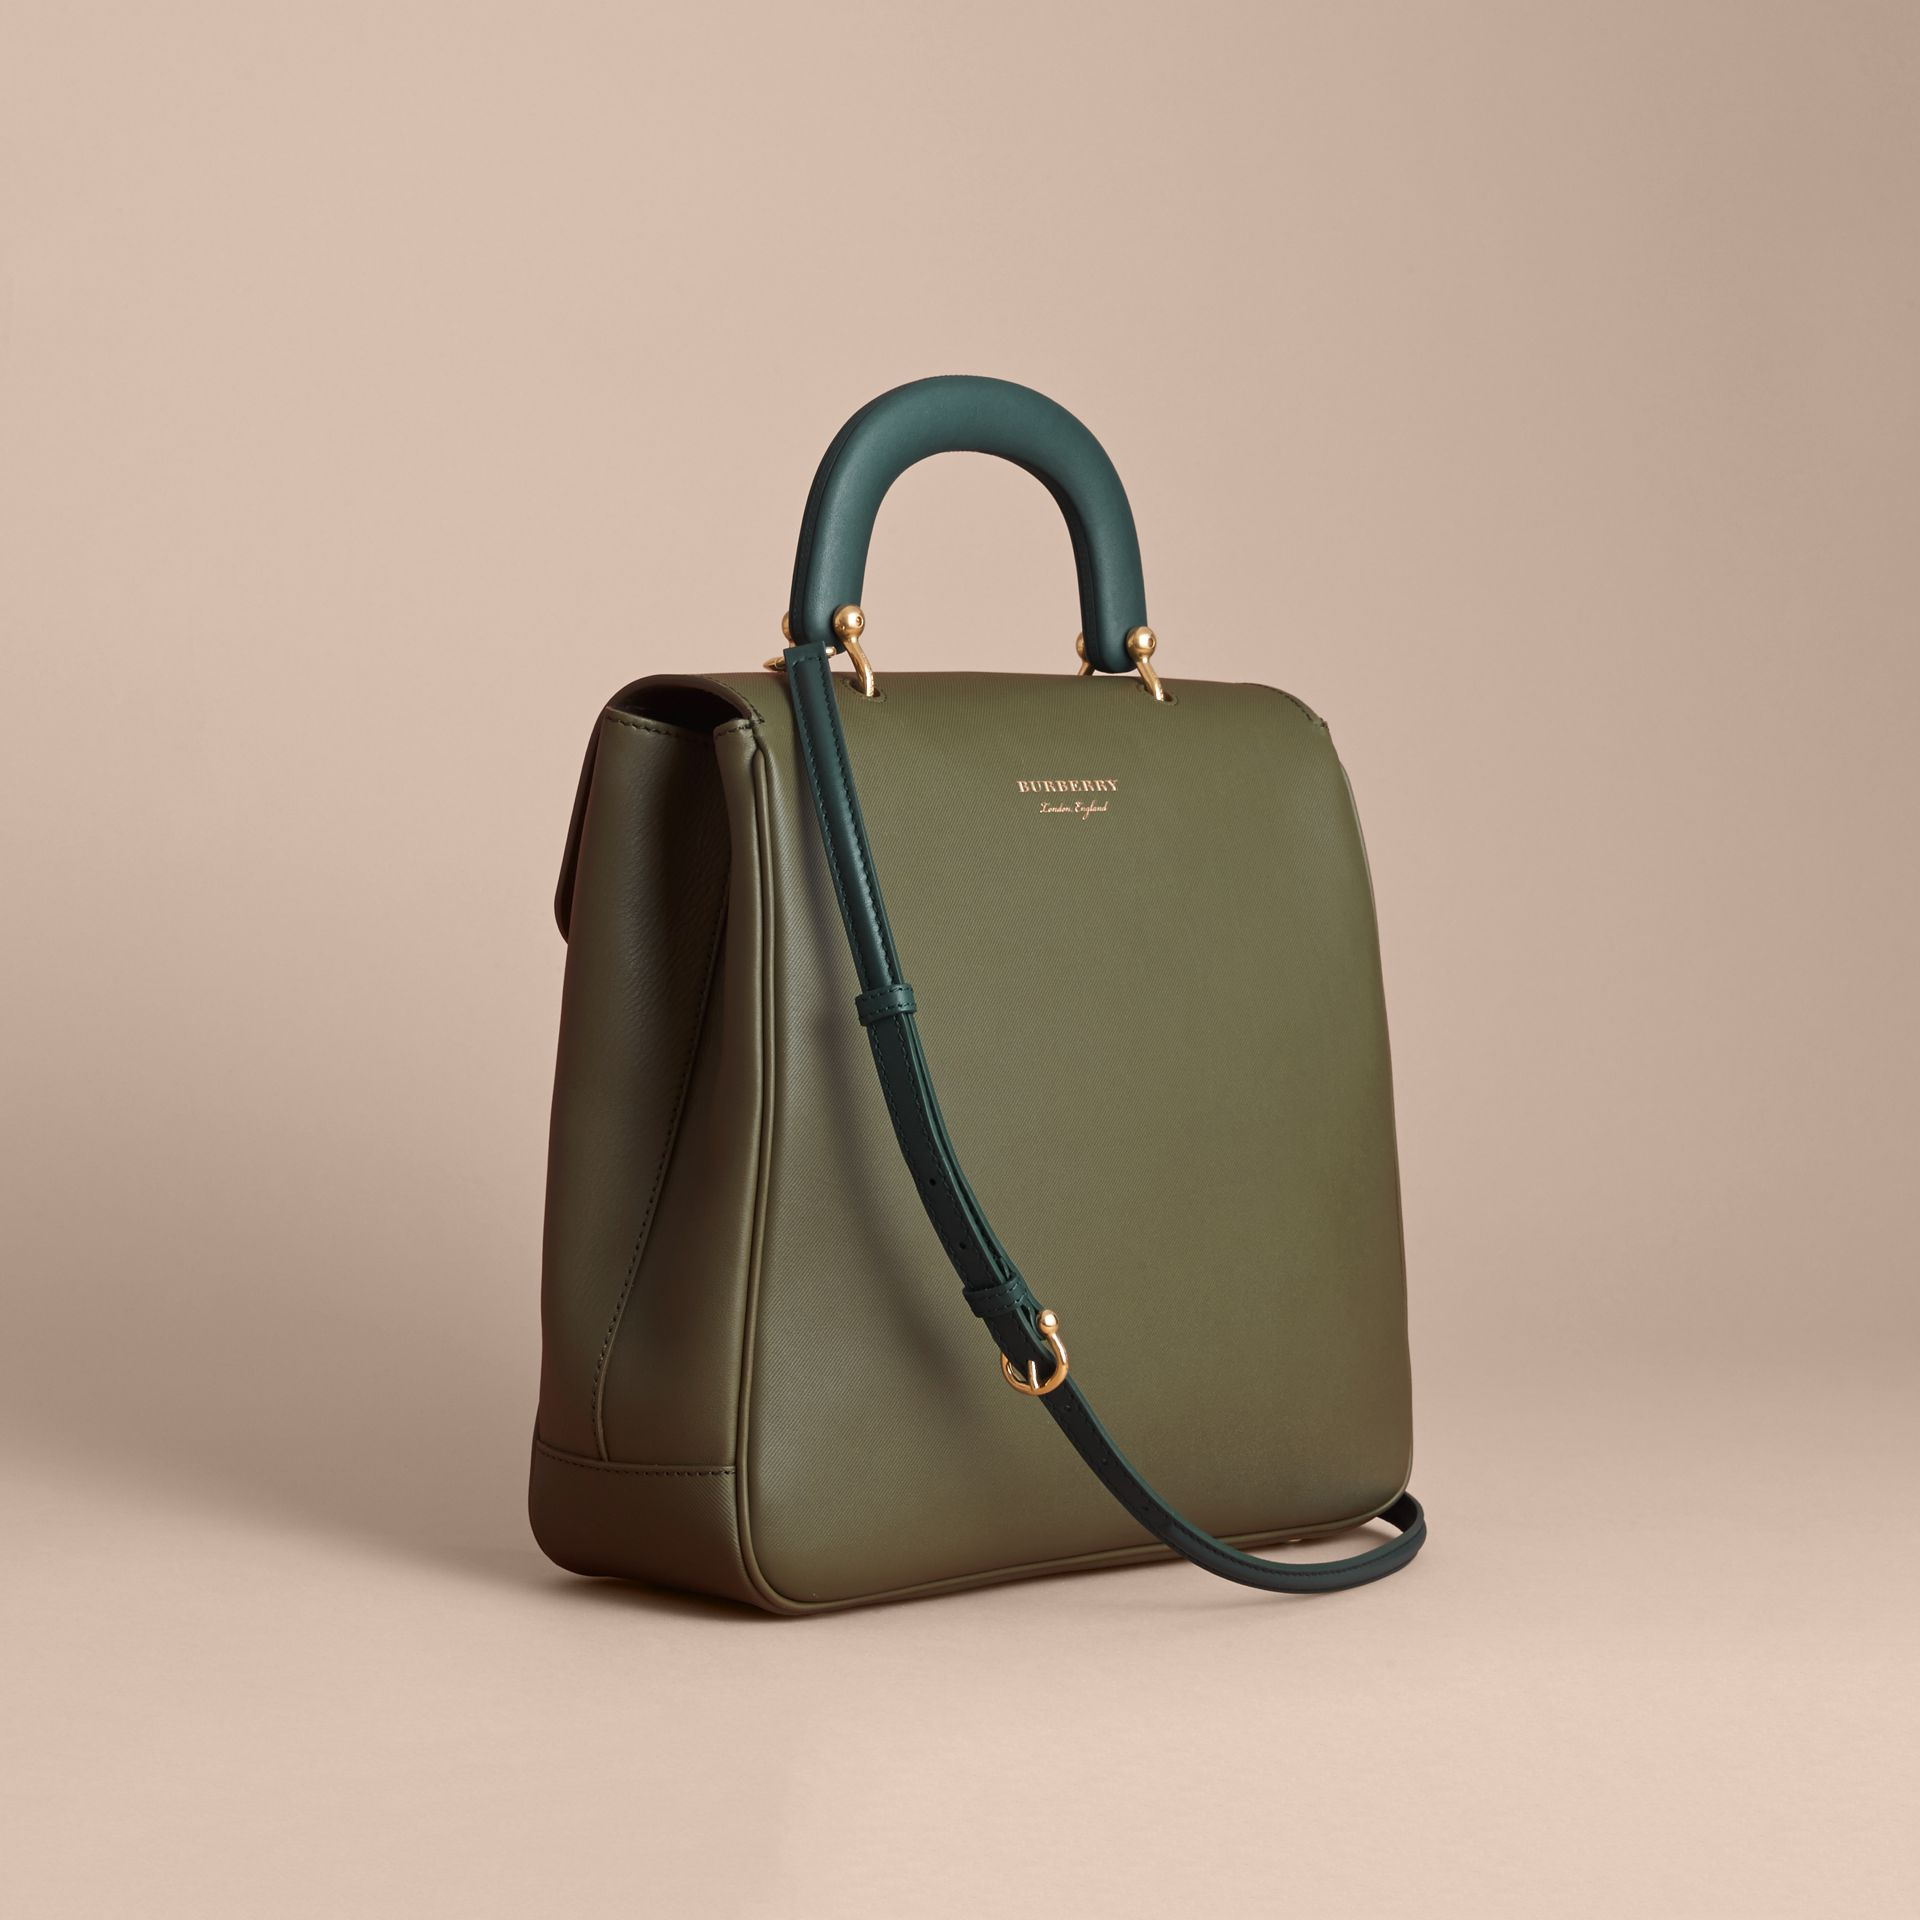 The Large DK88 Top Handle Bag in Moss Green - Women | Burberry Australia - gallery image 4